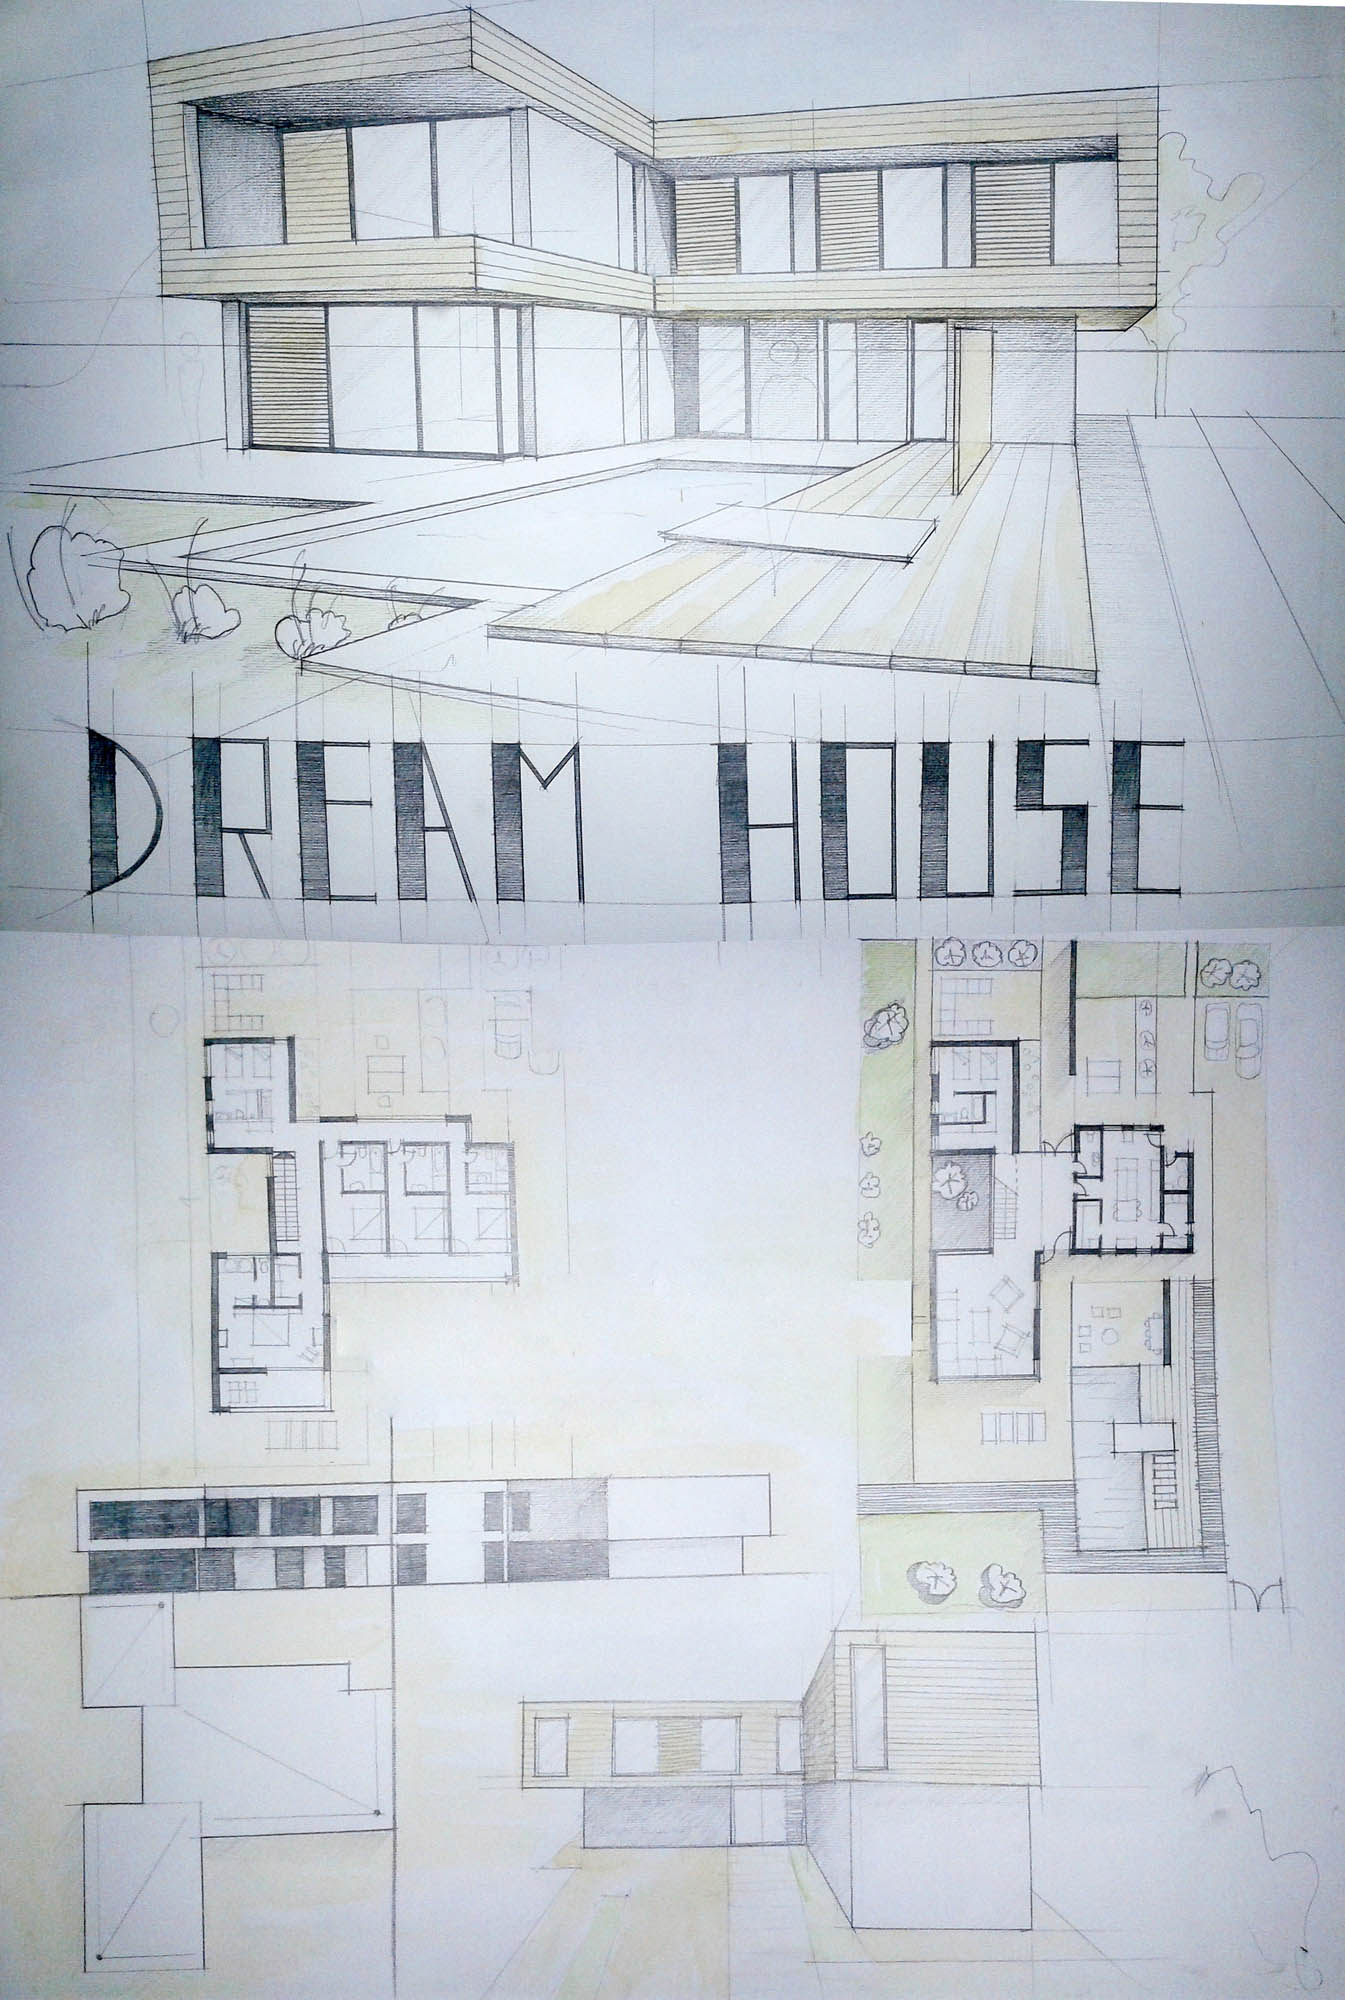 Drawn house modern architectural design Plans Plans House Perspective Architecture